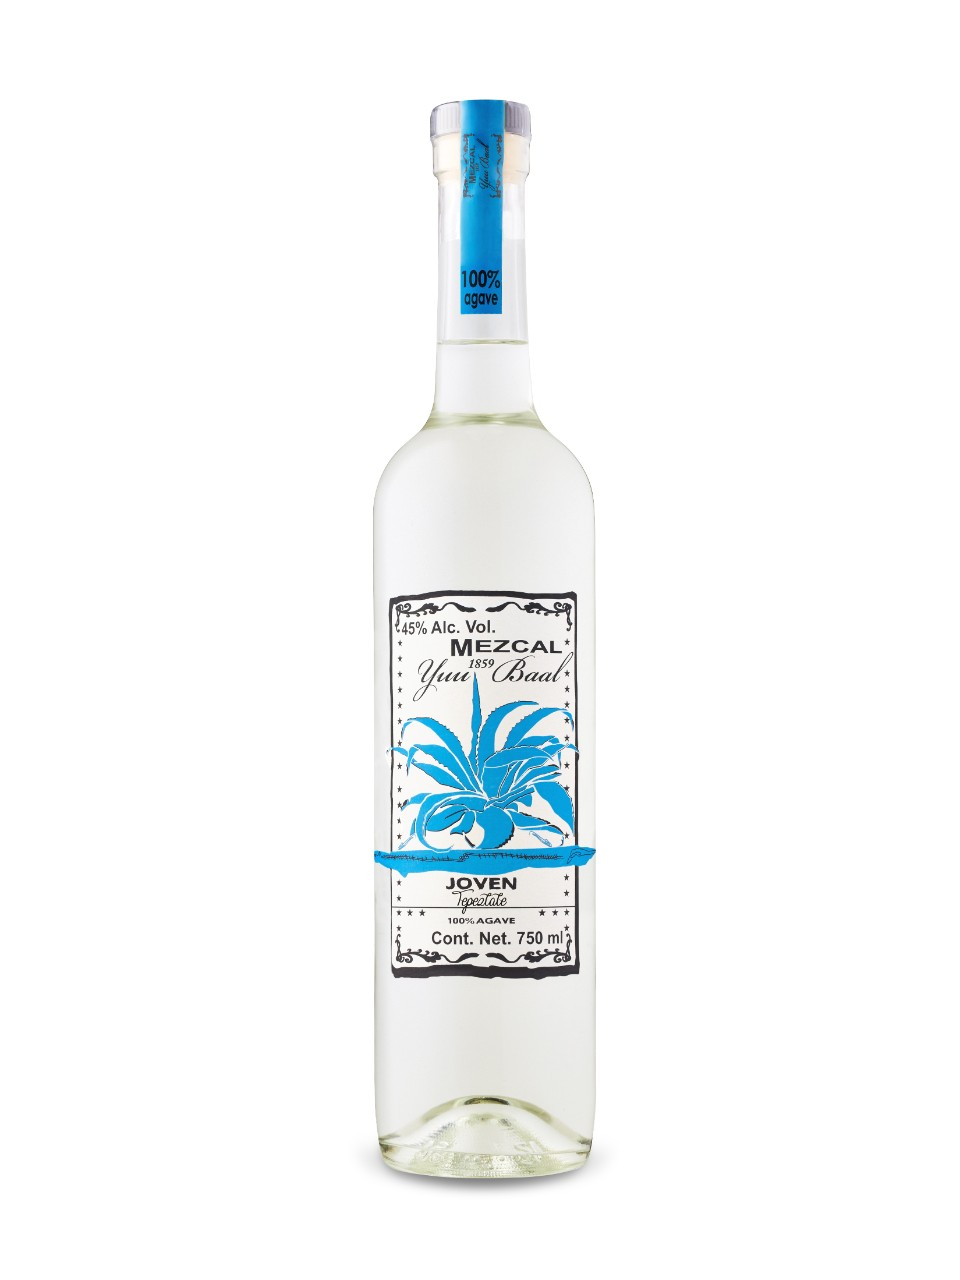 Image for Yuu Baal Joven Tepeztate Mezcal from LCBO